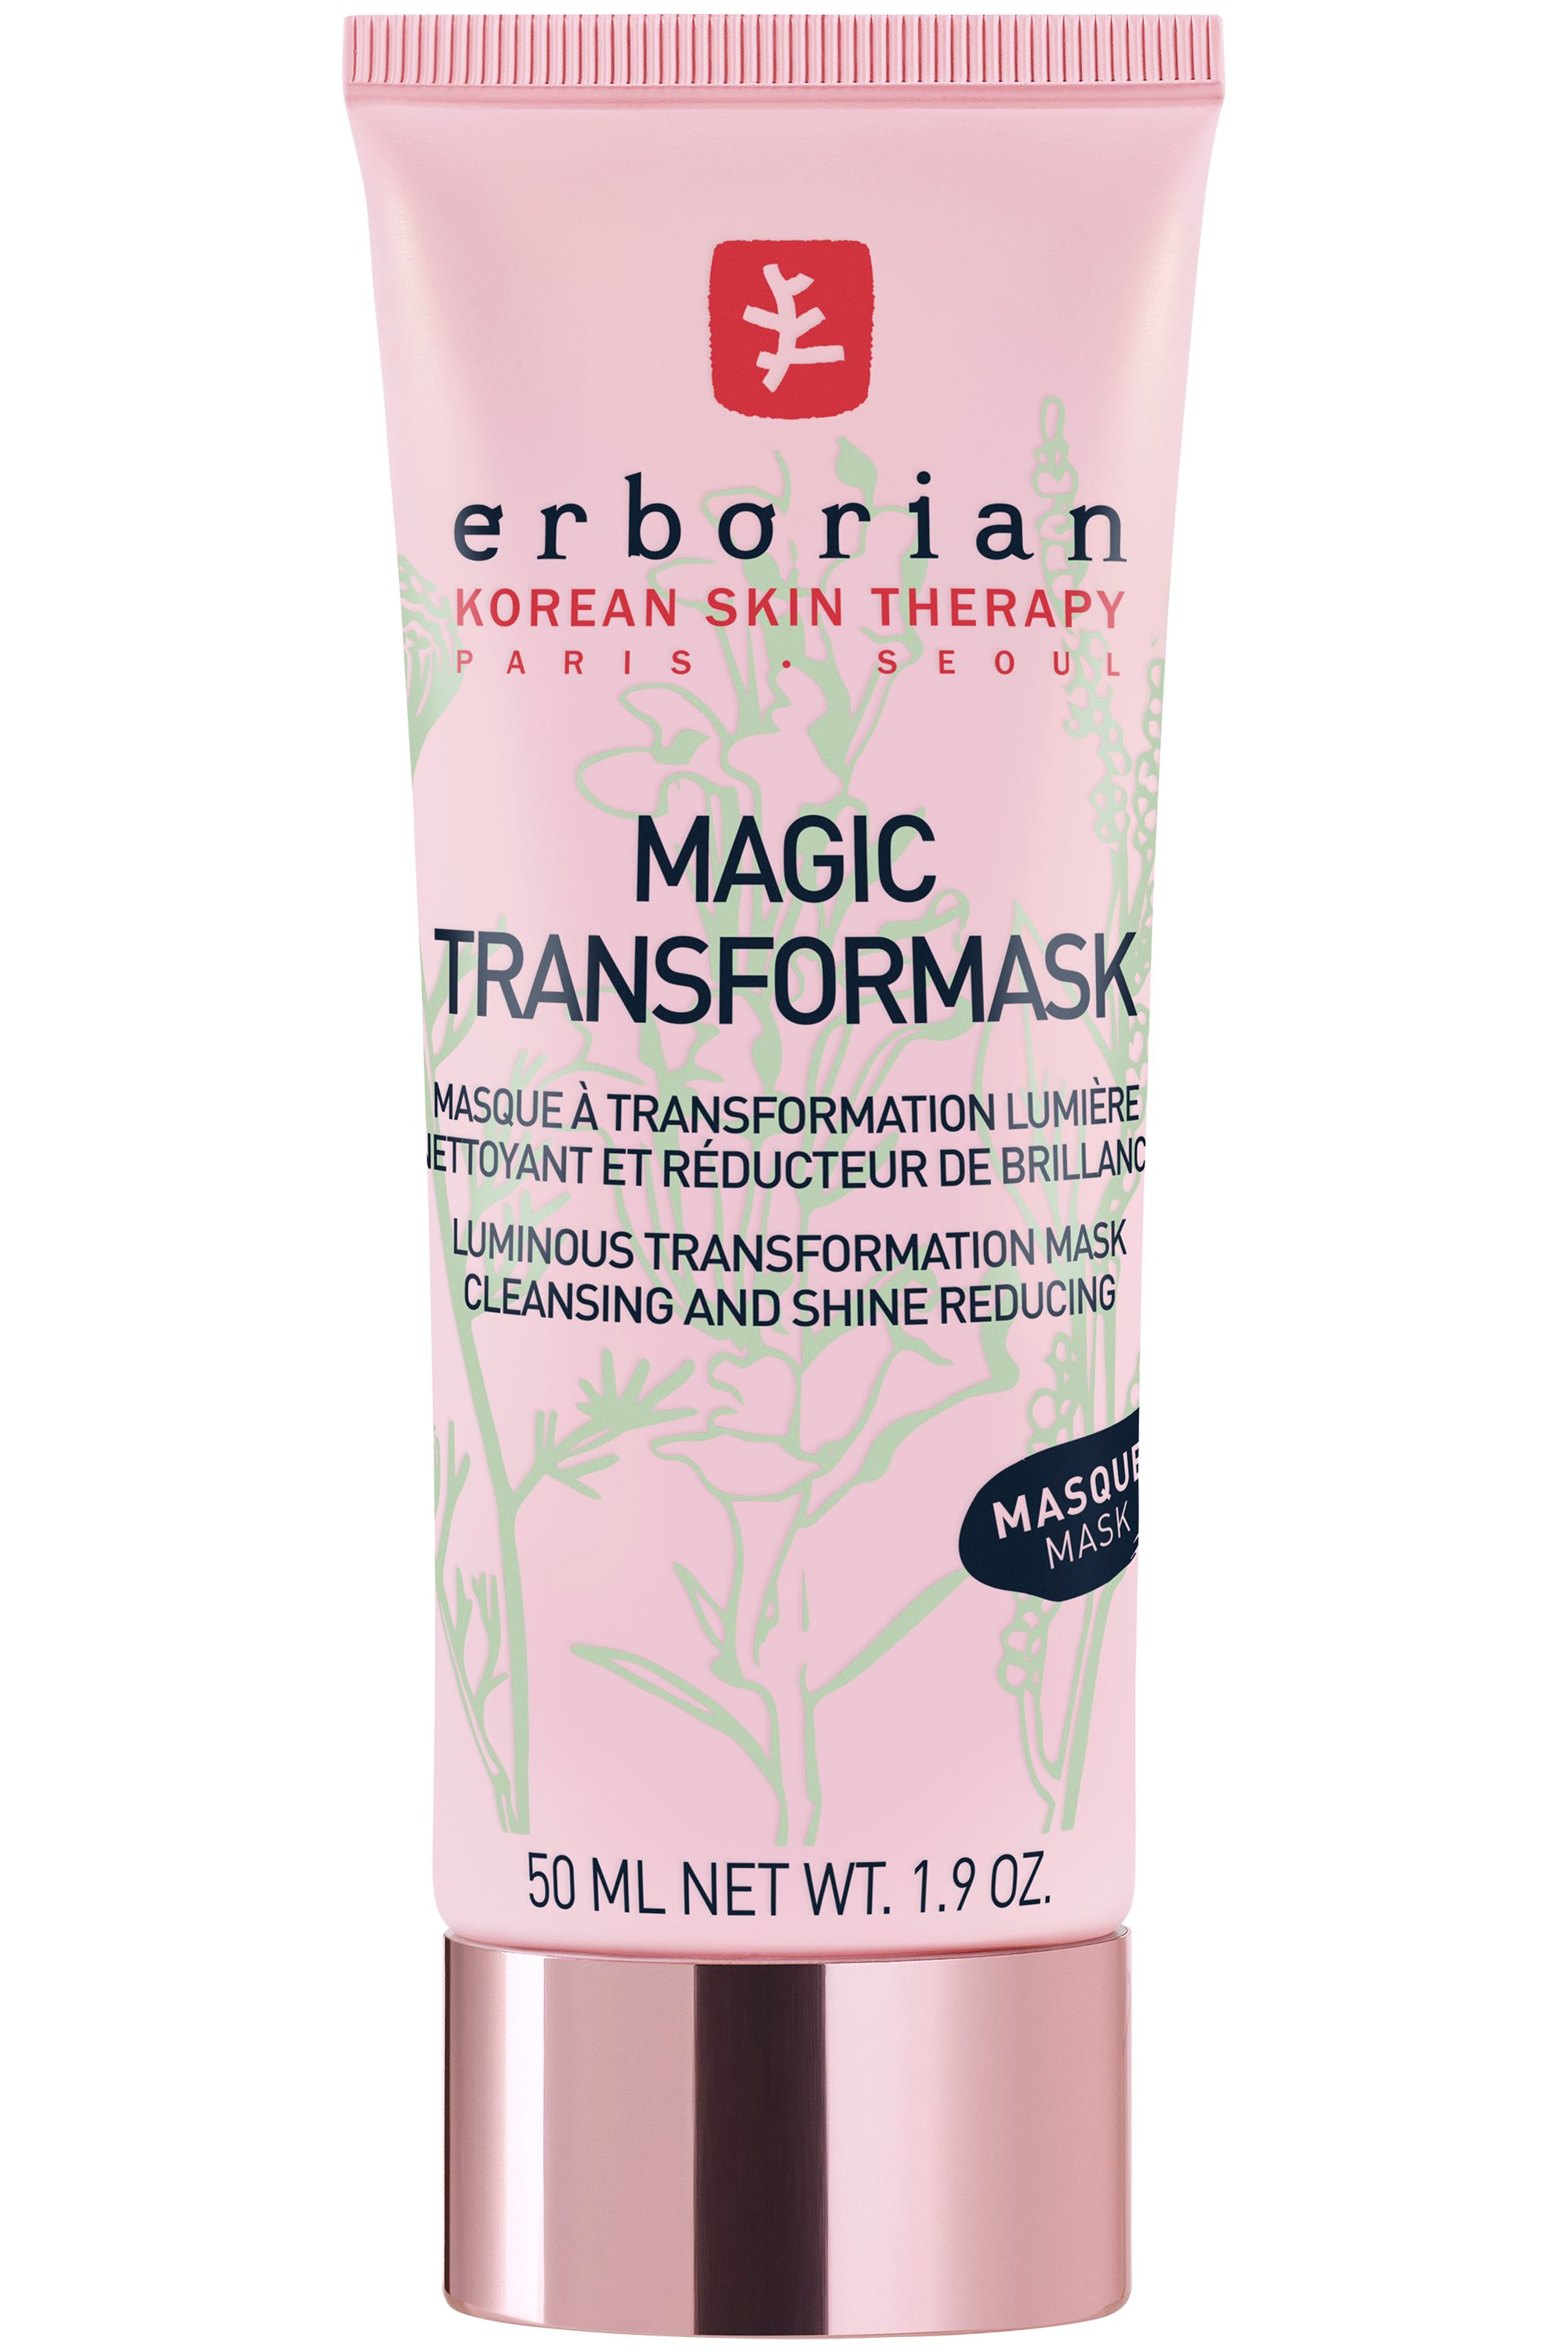 Blissim : Erborian - Masque visage Magic Transformask - Masque visage Magic Transformask